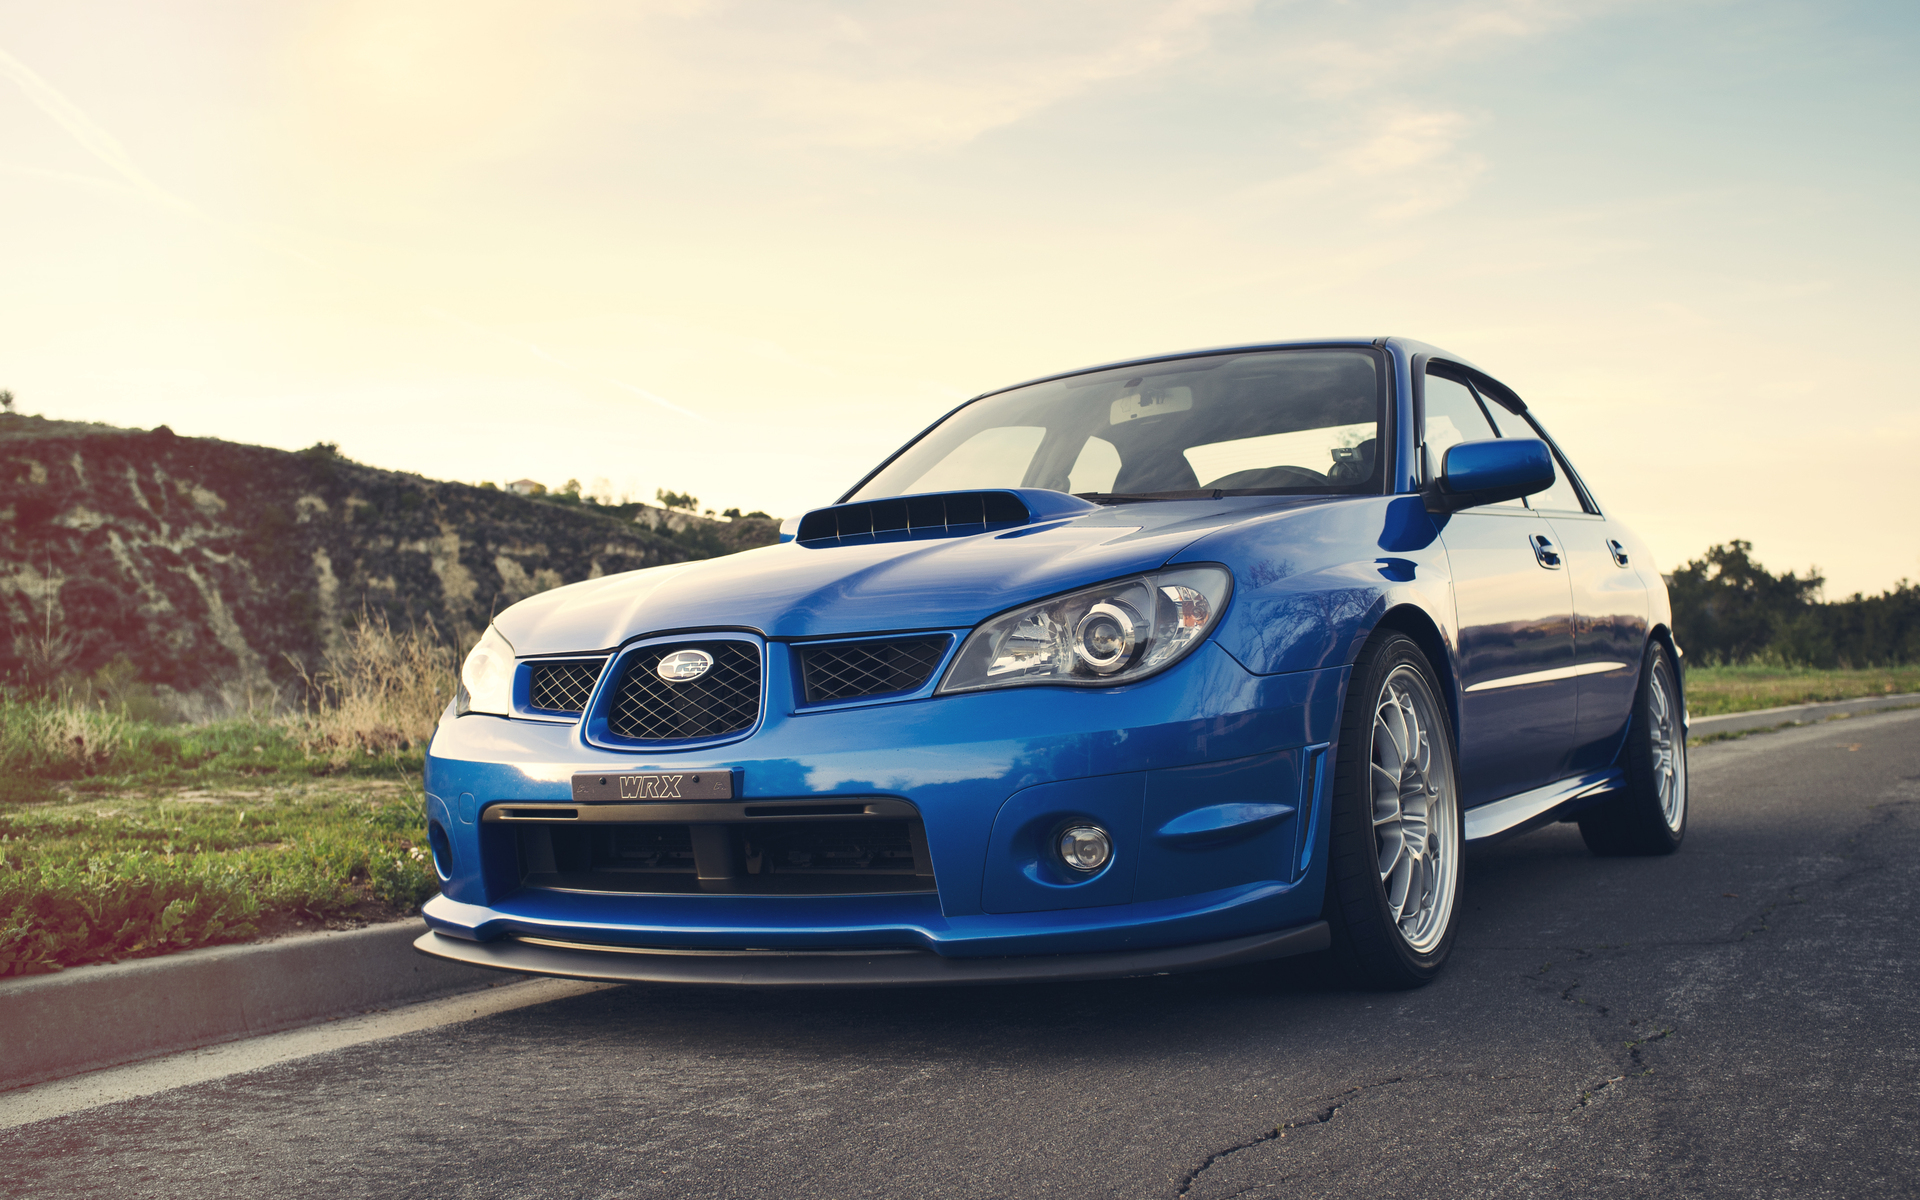 37261 download wallpaper Transport, Auto, Subaru screensavers and pictures for free